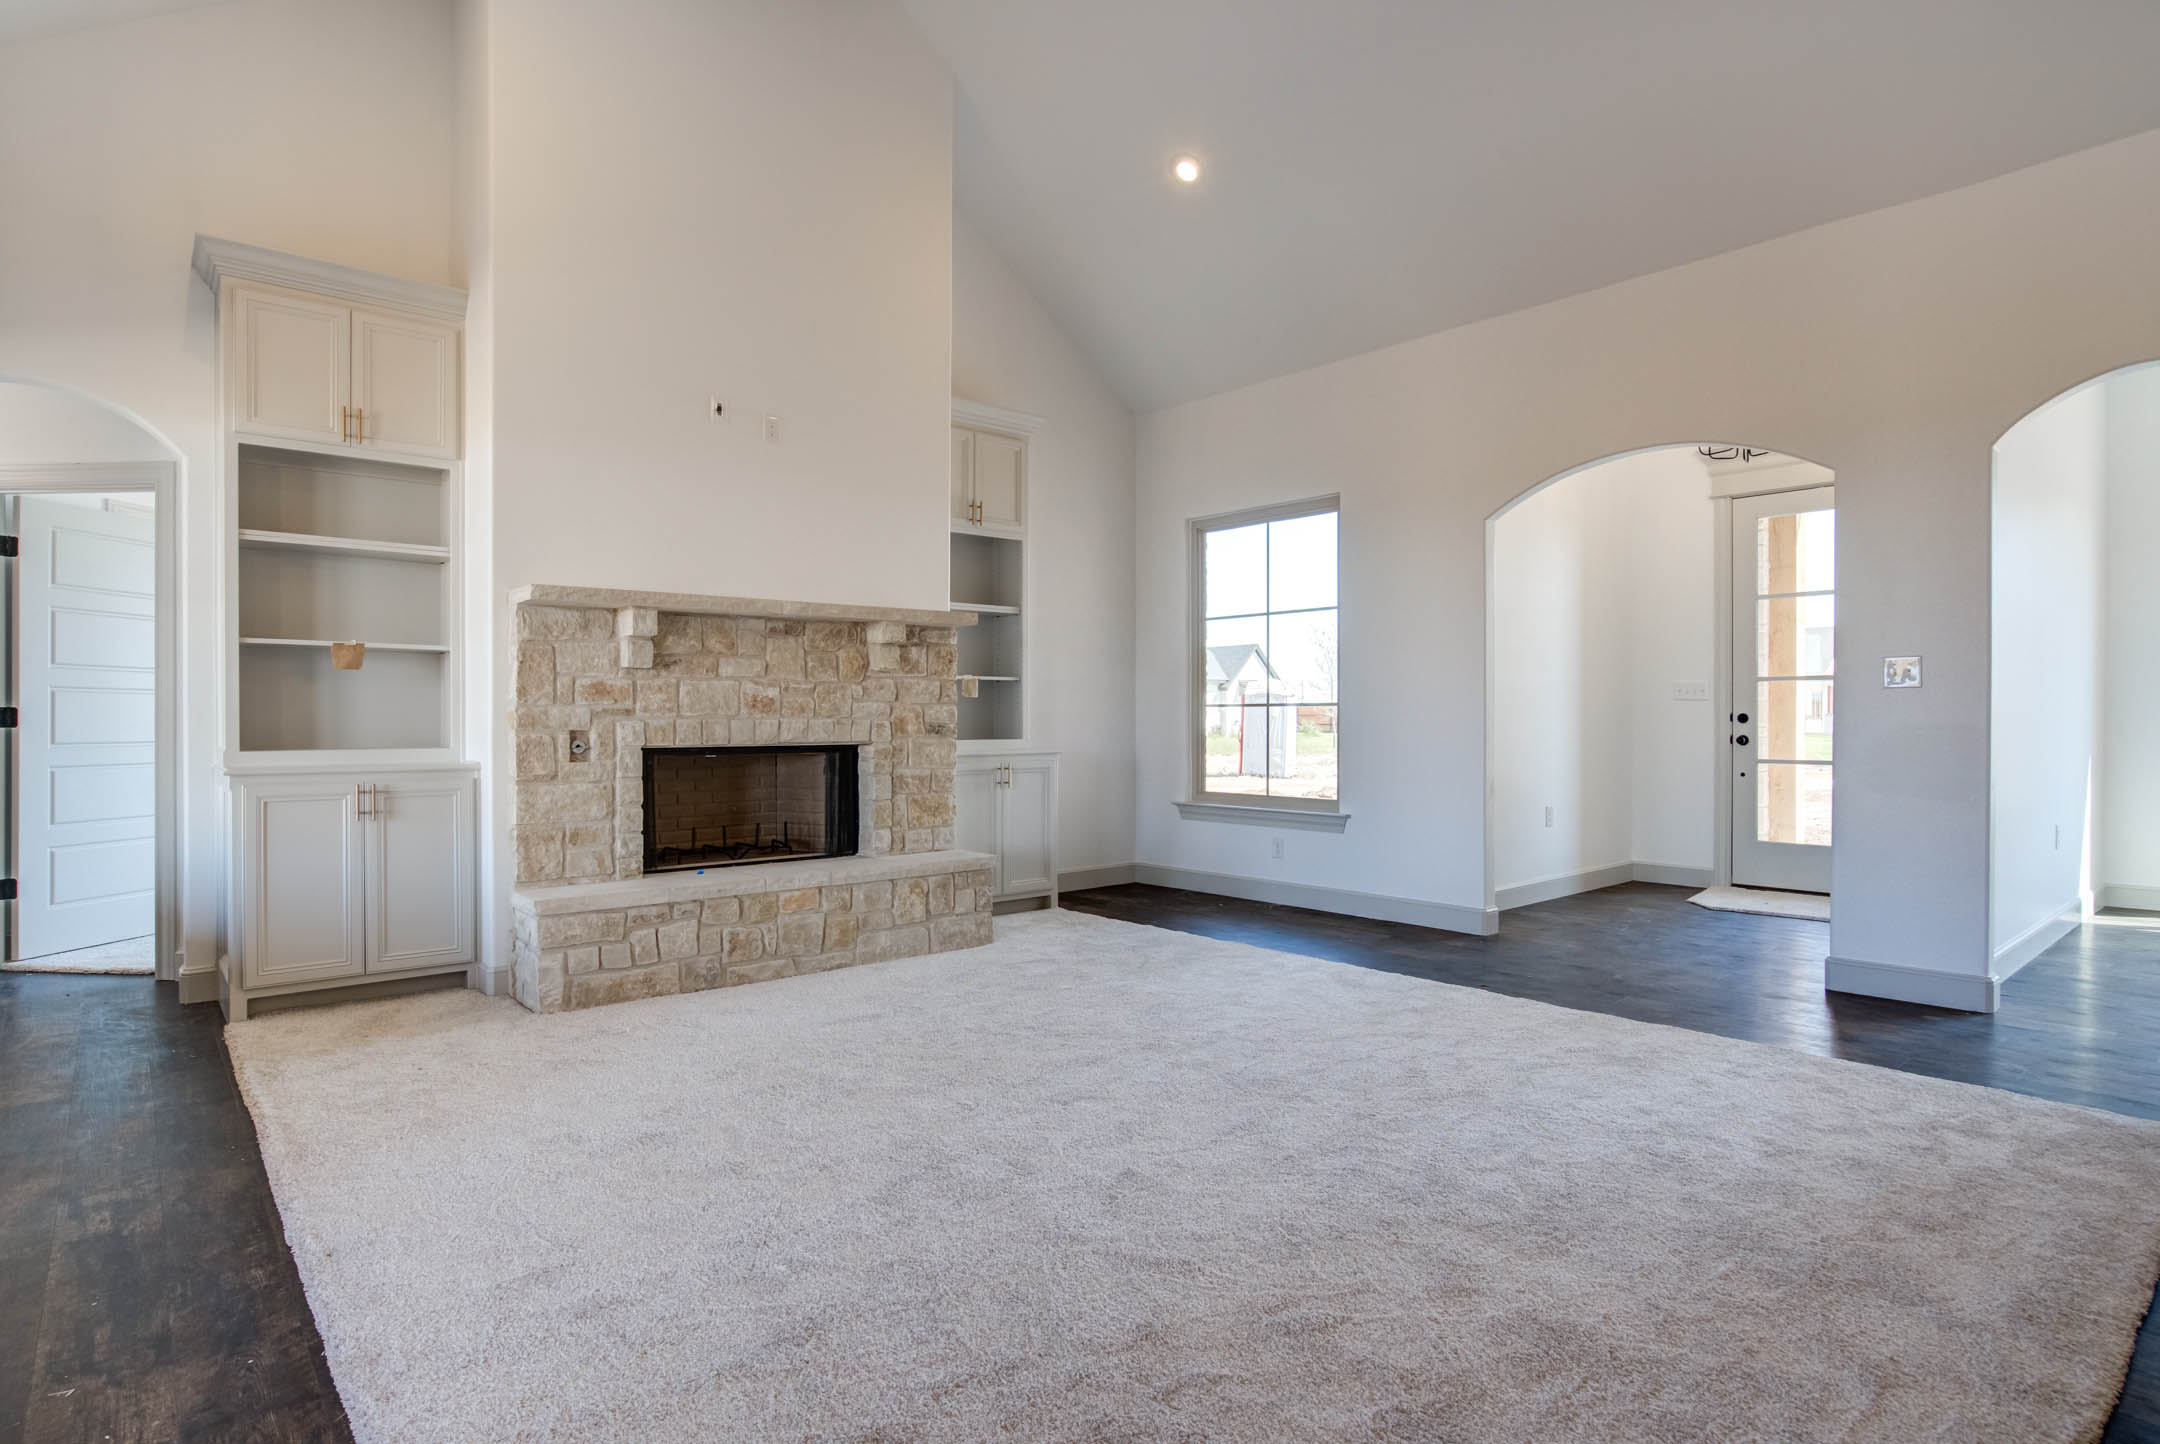 Spacious living area in new home for sale near Lubbock, Texas.